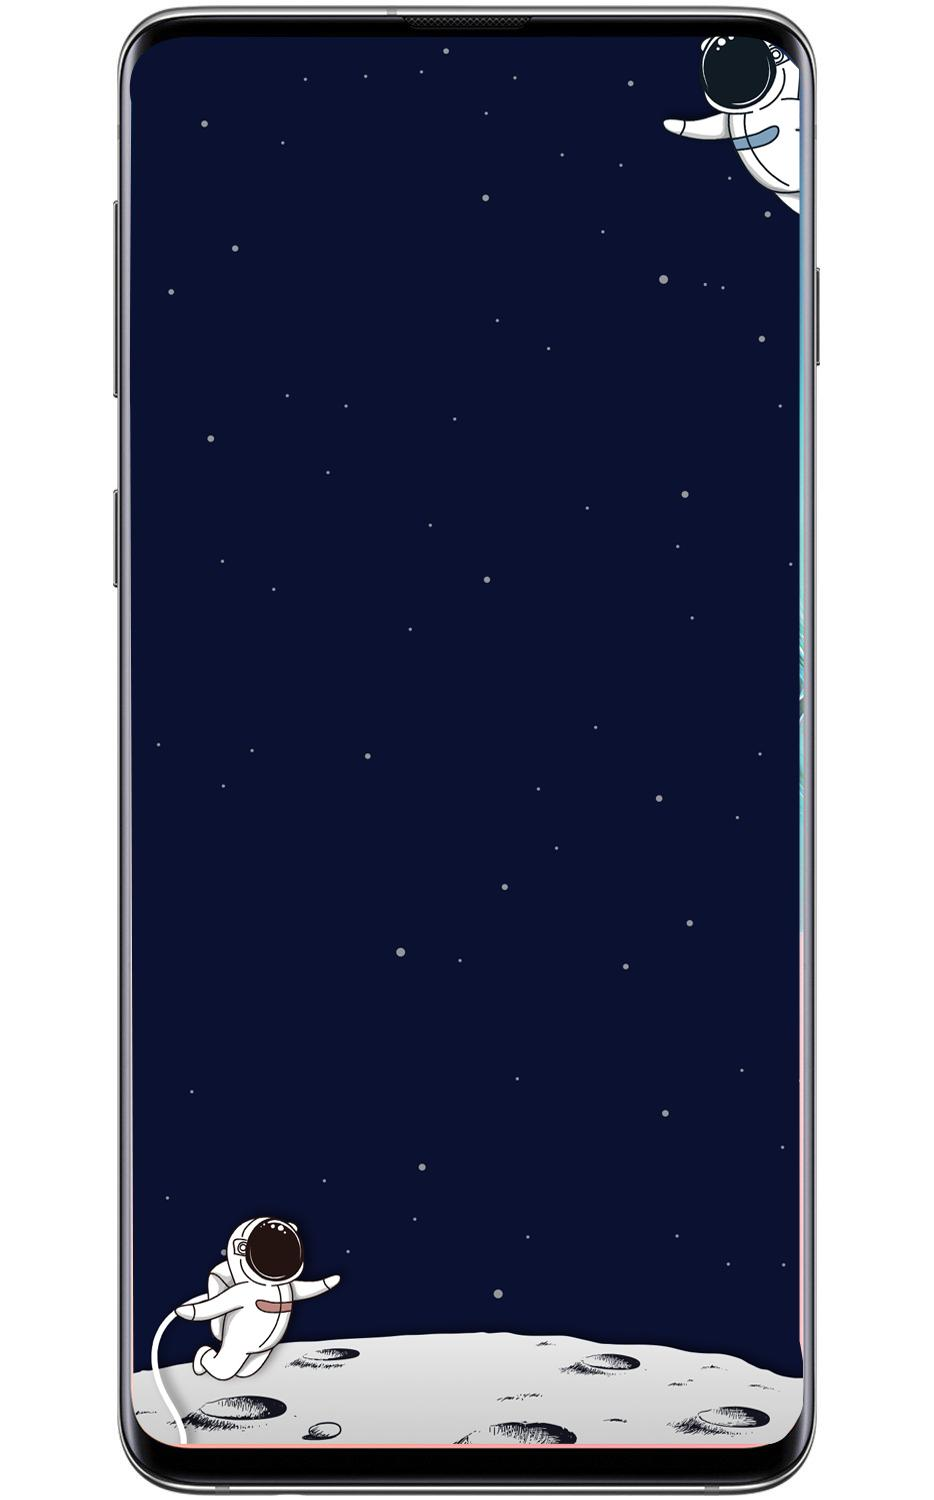 S10 Wallpaper Wallpapers Galaxy S10 Plus For Android APK